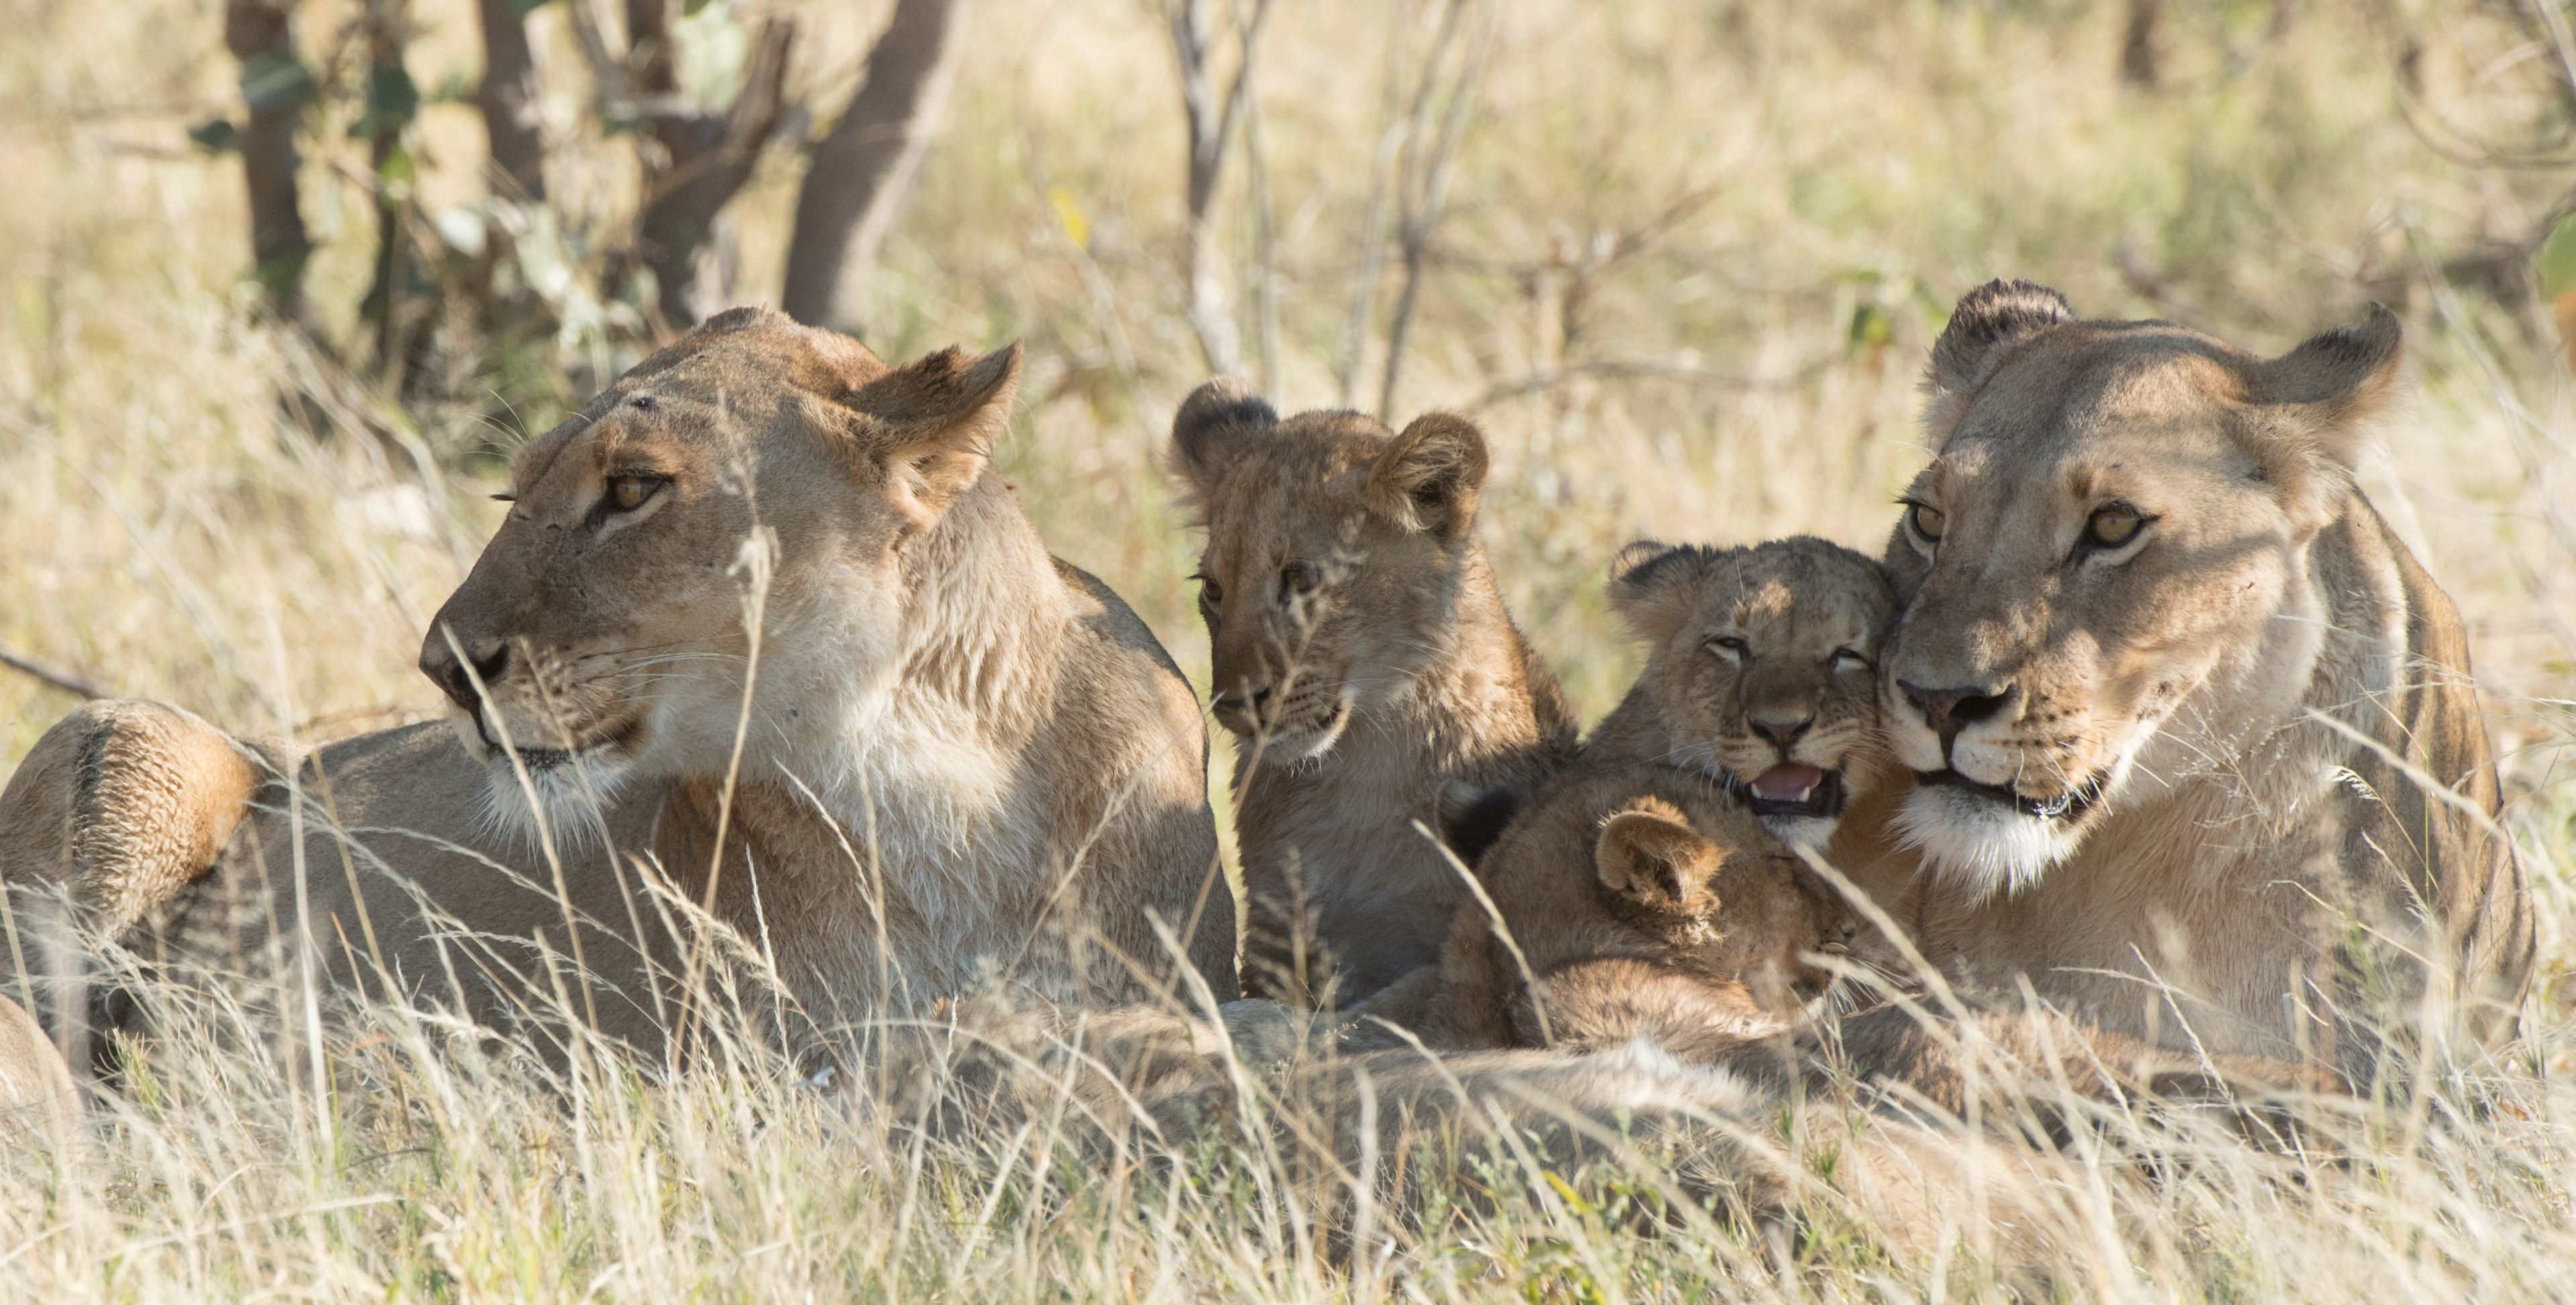 Khwai Tented Camp, Moremi Game Reserve, Botswana, lioness and baby lions